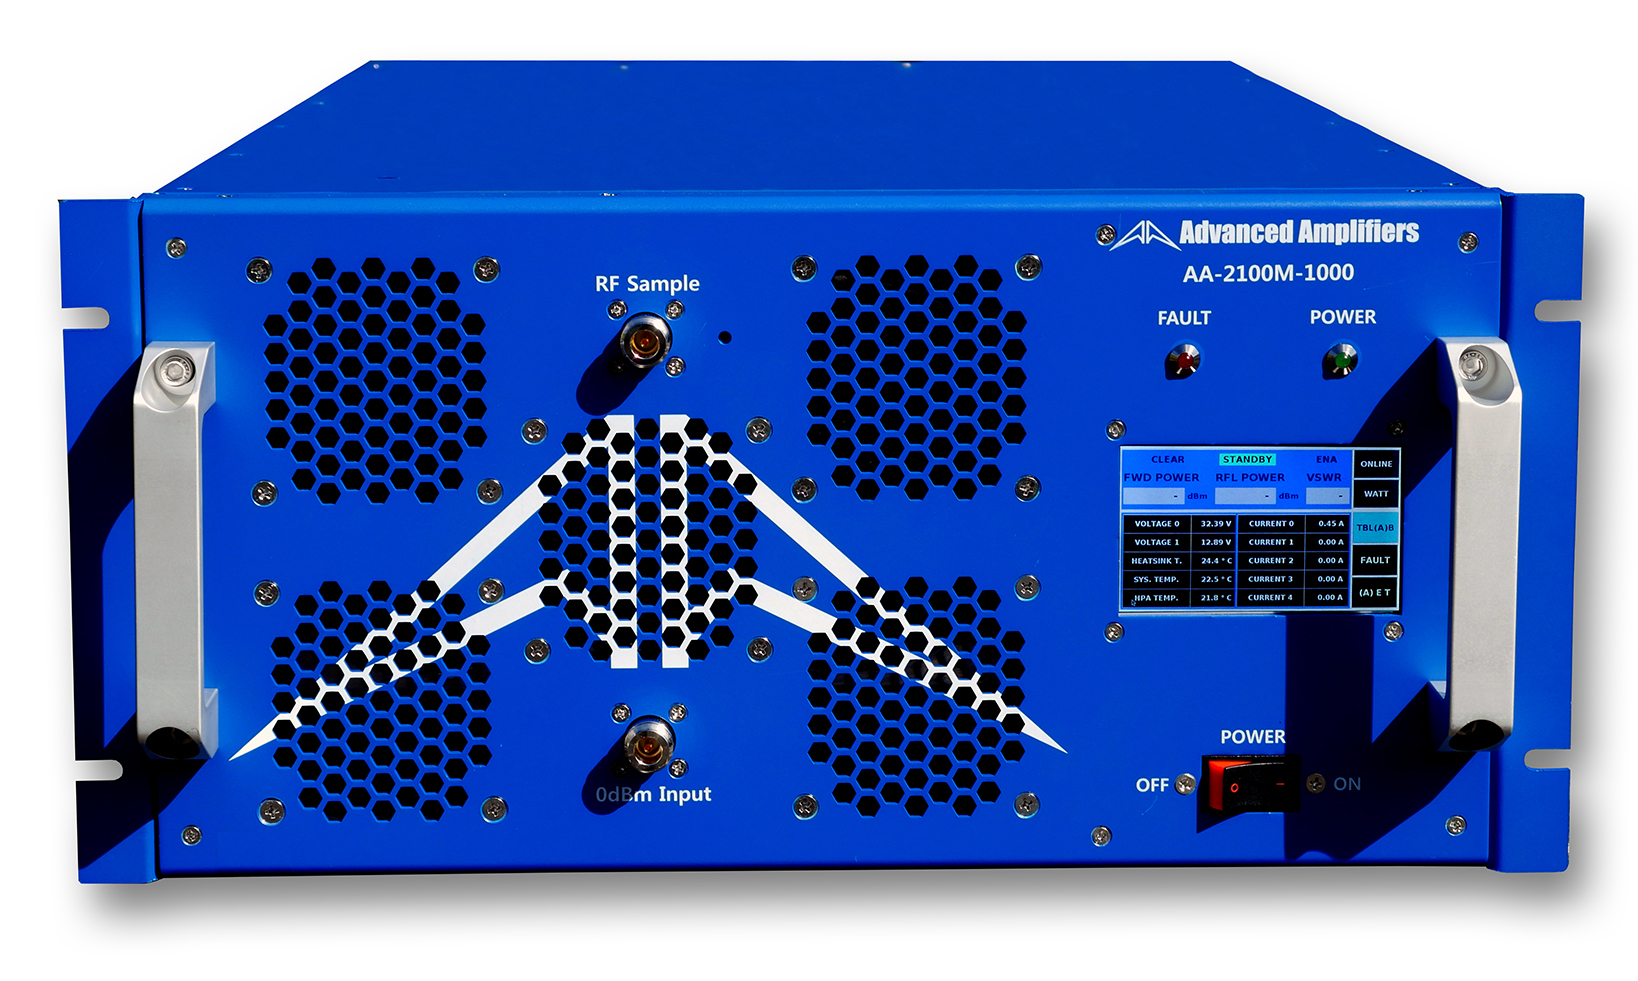 Advanced Amplifiers AA-2100M-1000